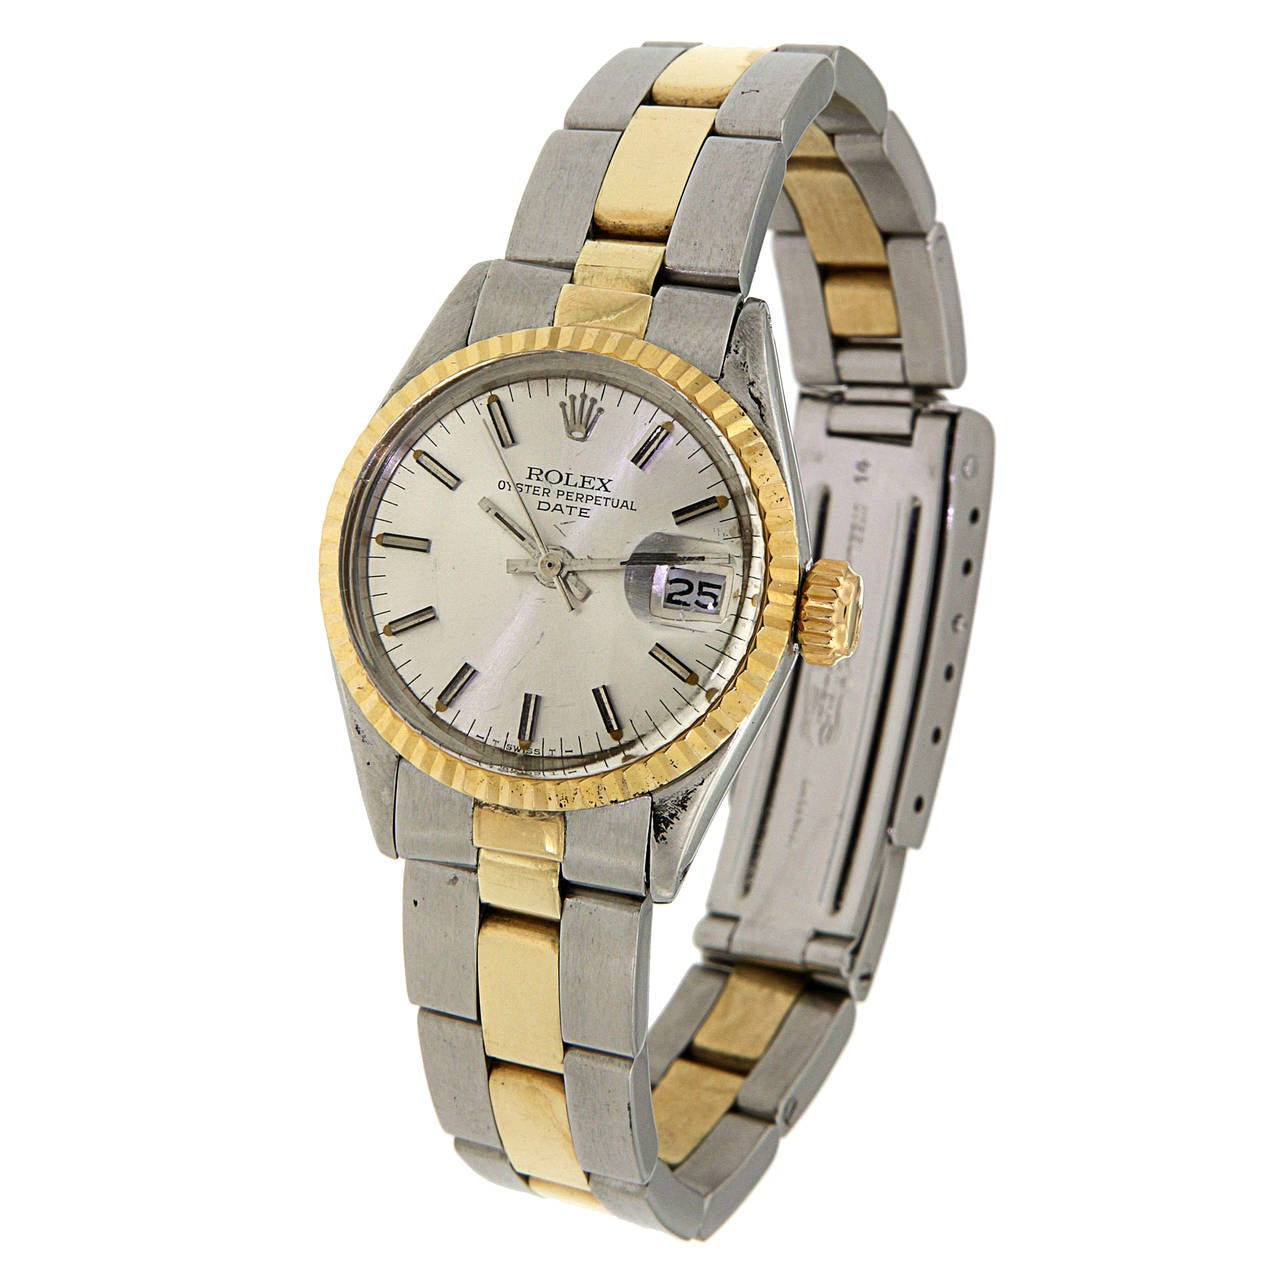 Automatic movement, Quickset date, plastic crystal. Stainless steel case with 18  carat yellow gold, fluted bezel, 26mm diameter. White dial with gold baton markers. Stainless steel and 18 carat yellow gold Oyster bracelet. REF.6517